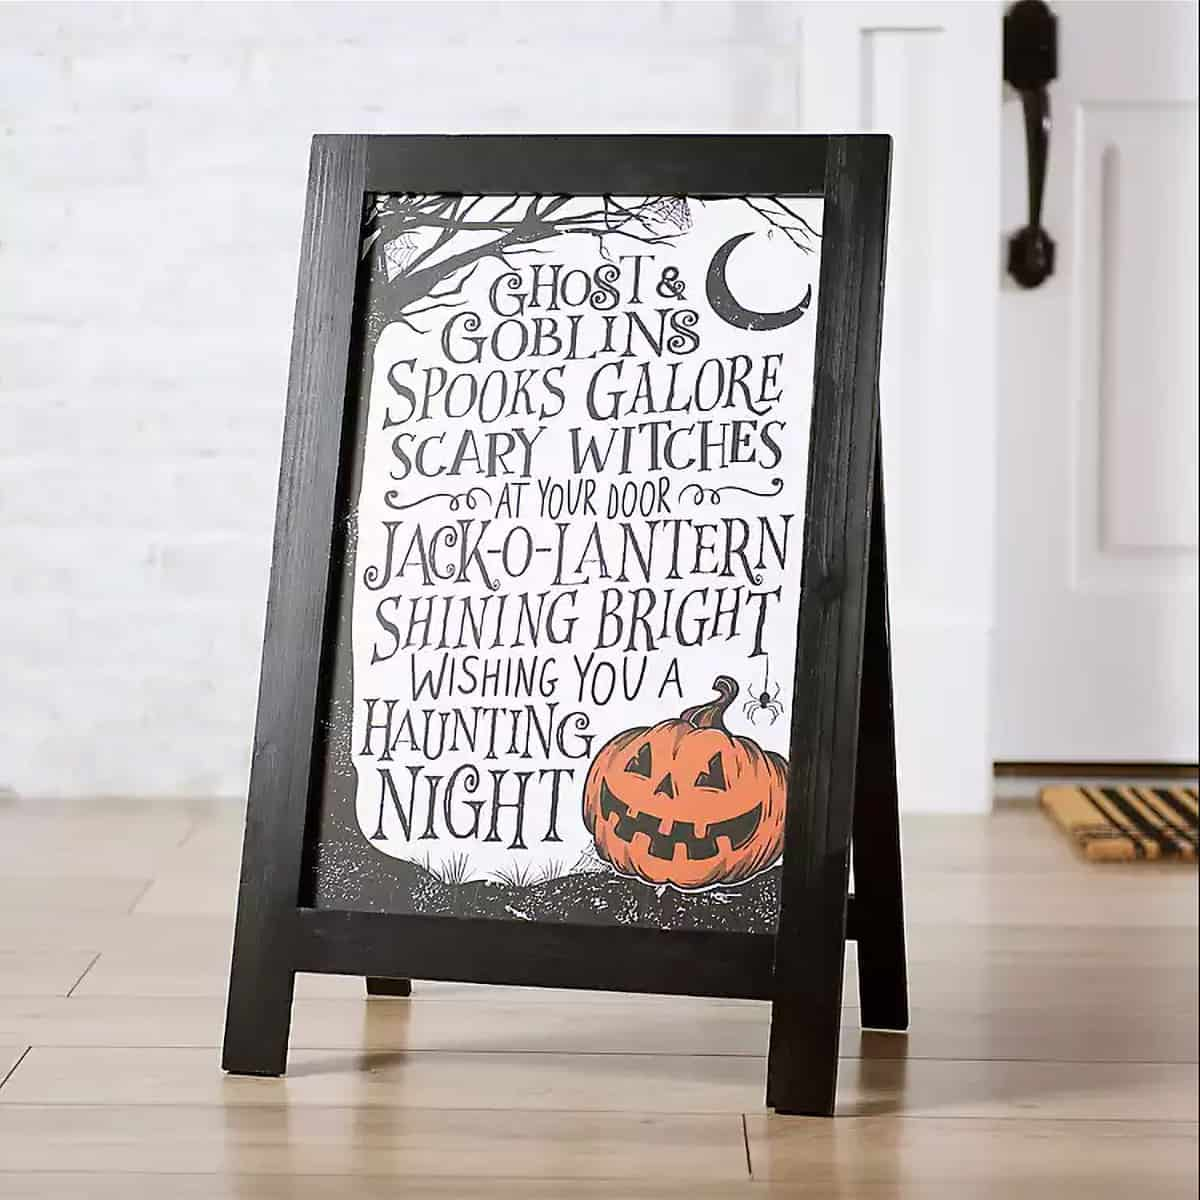 Witches go riding small menu folding board Halloween front porch decor.